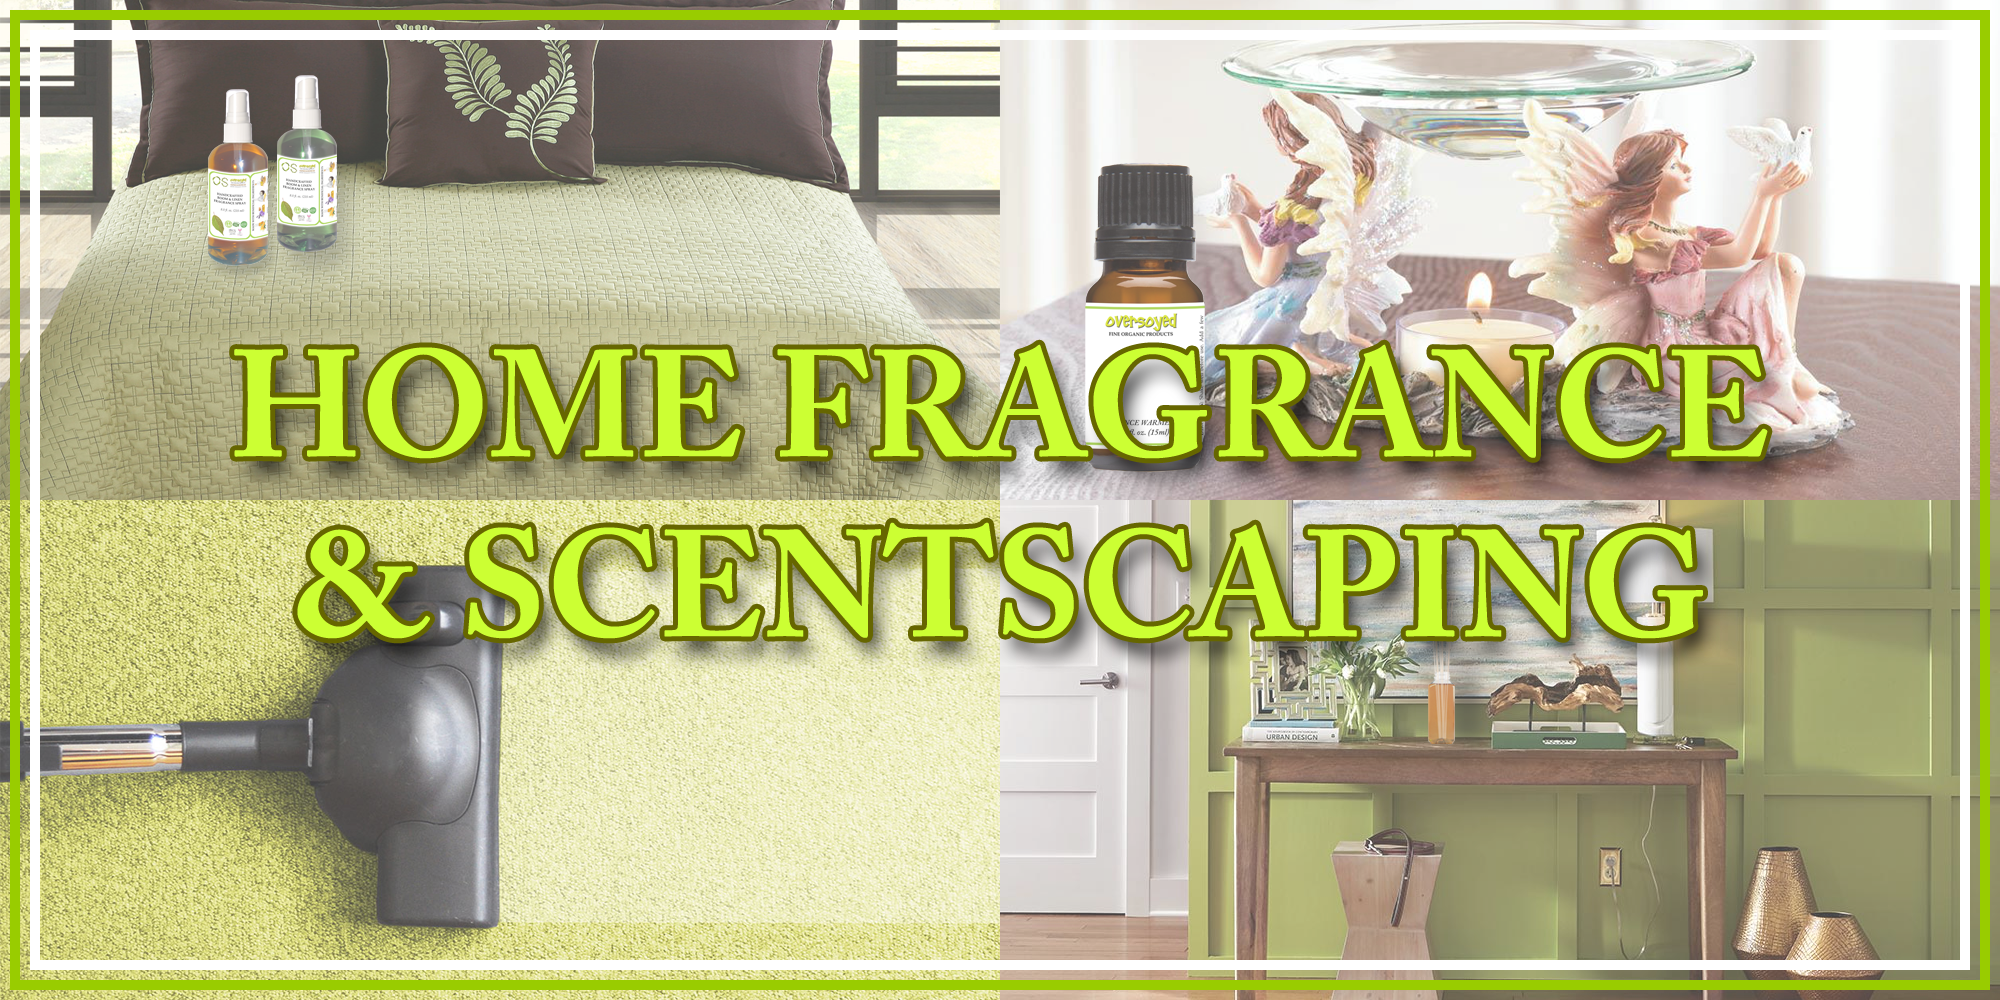 OverSoyed Fine Organic Products - Home Fragrance & Scentscaping Collection